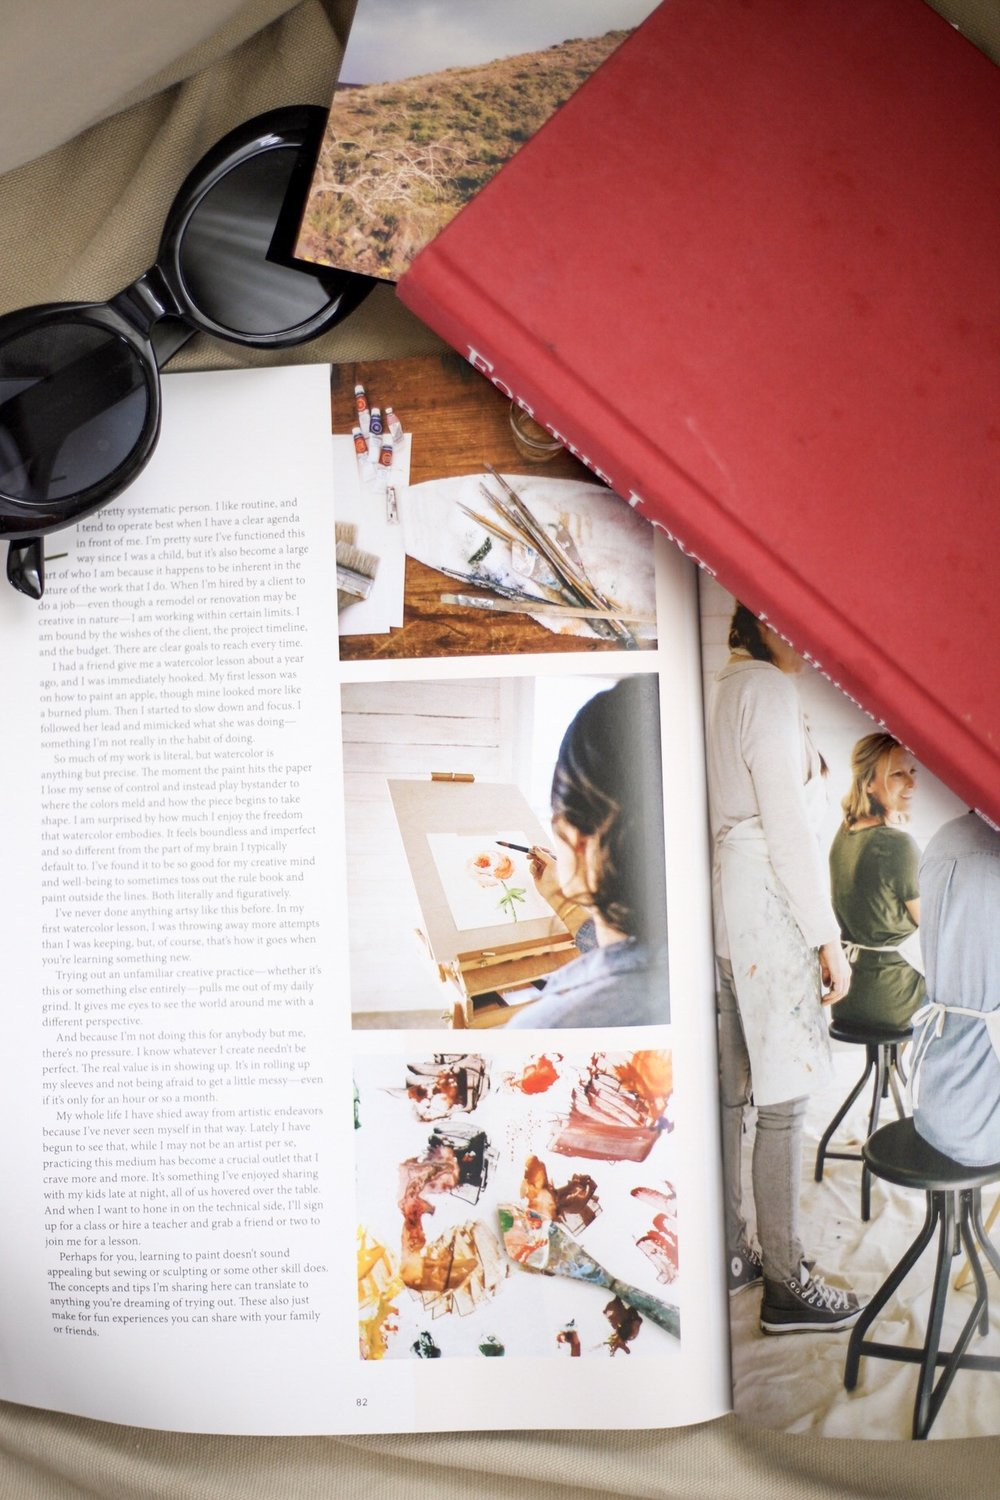 Products shown:  the Magnolia Journal (Fall 2018 issue)  and  For the Love by Jen Hatmaker